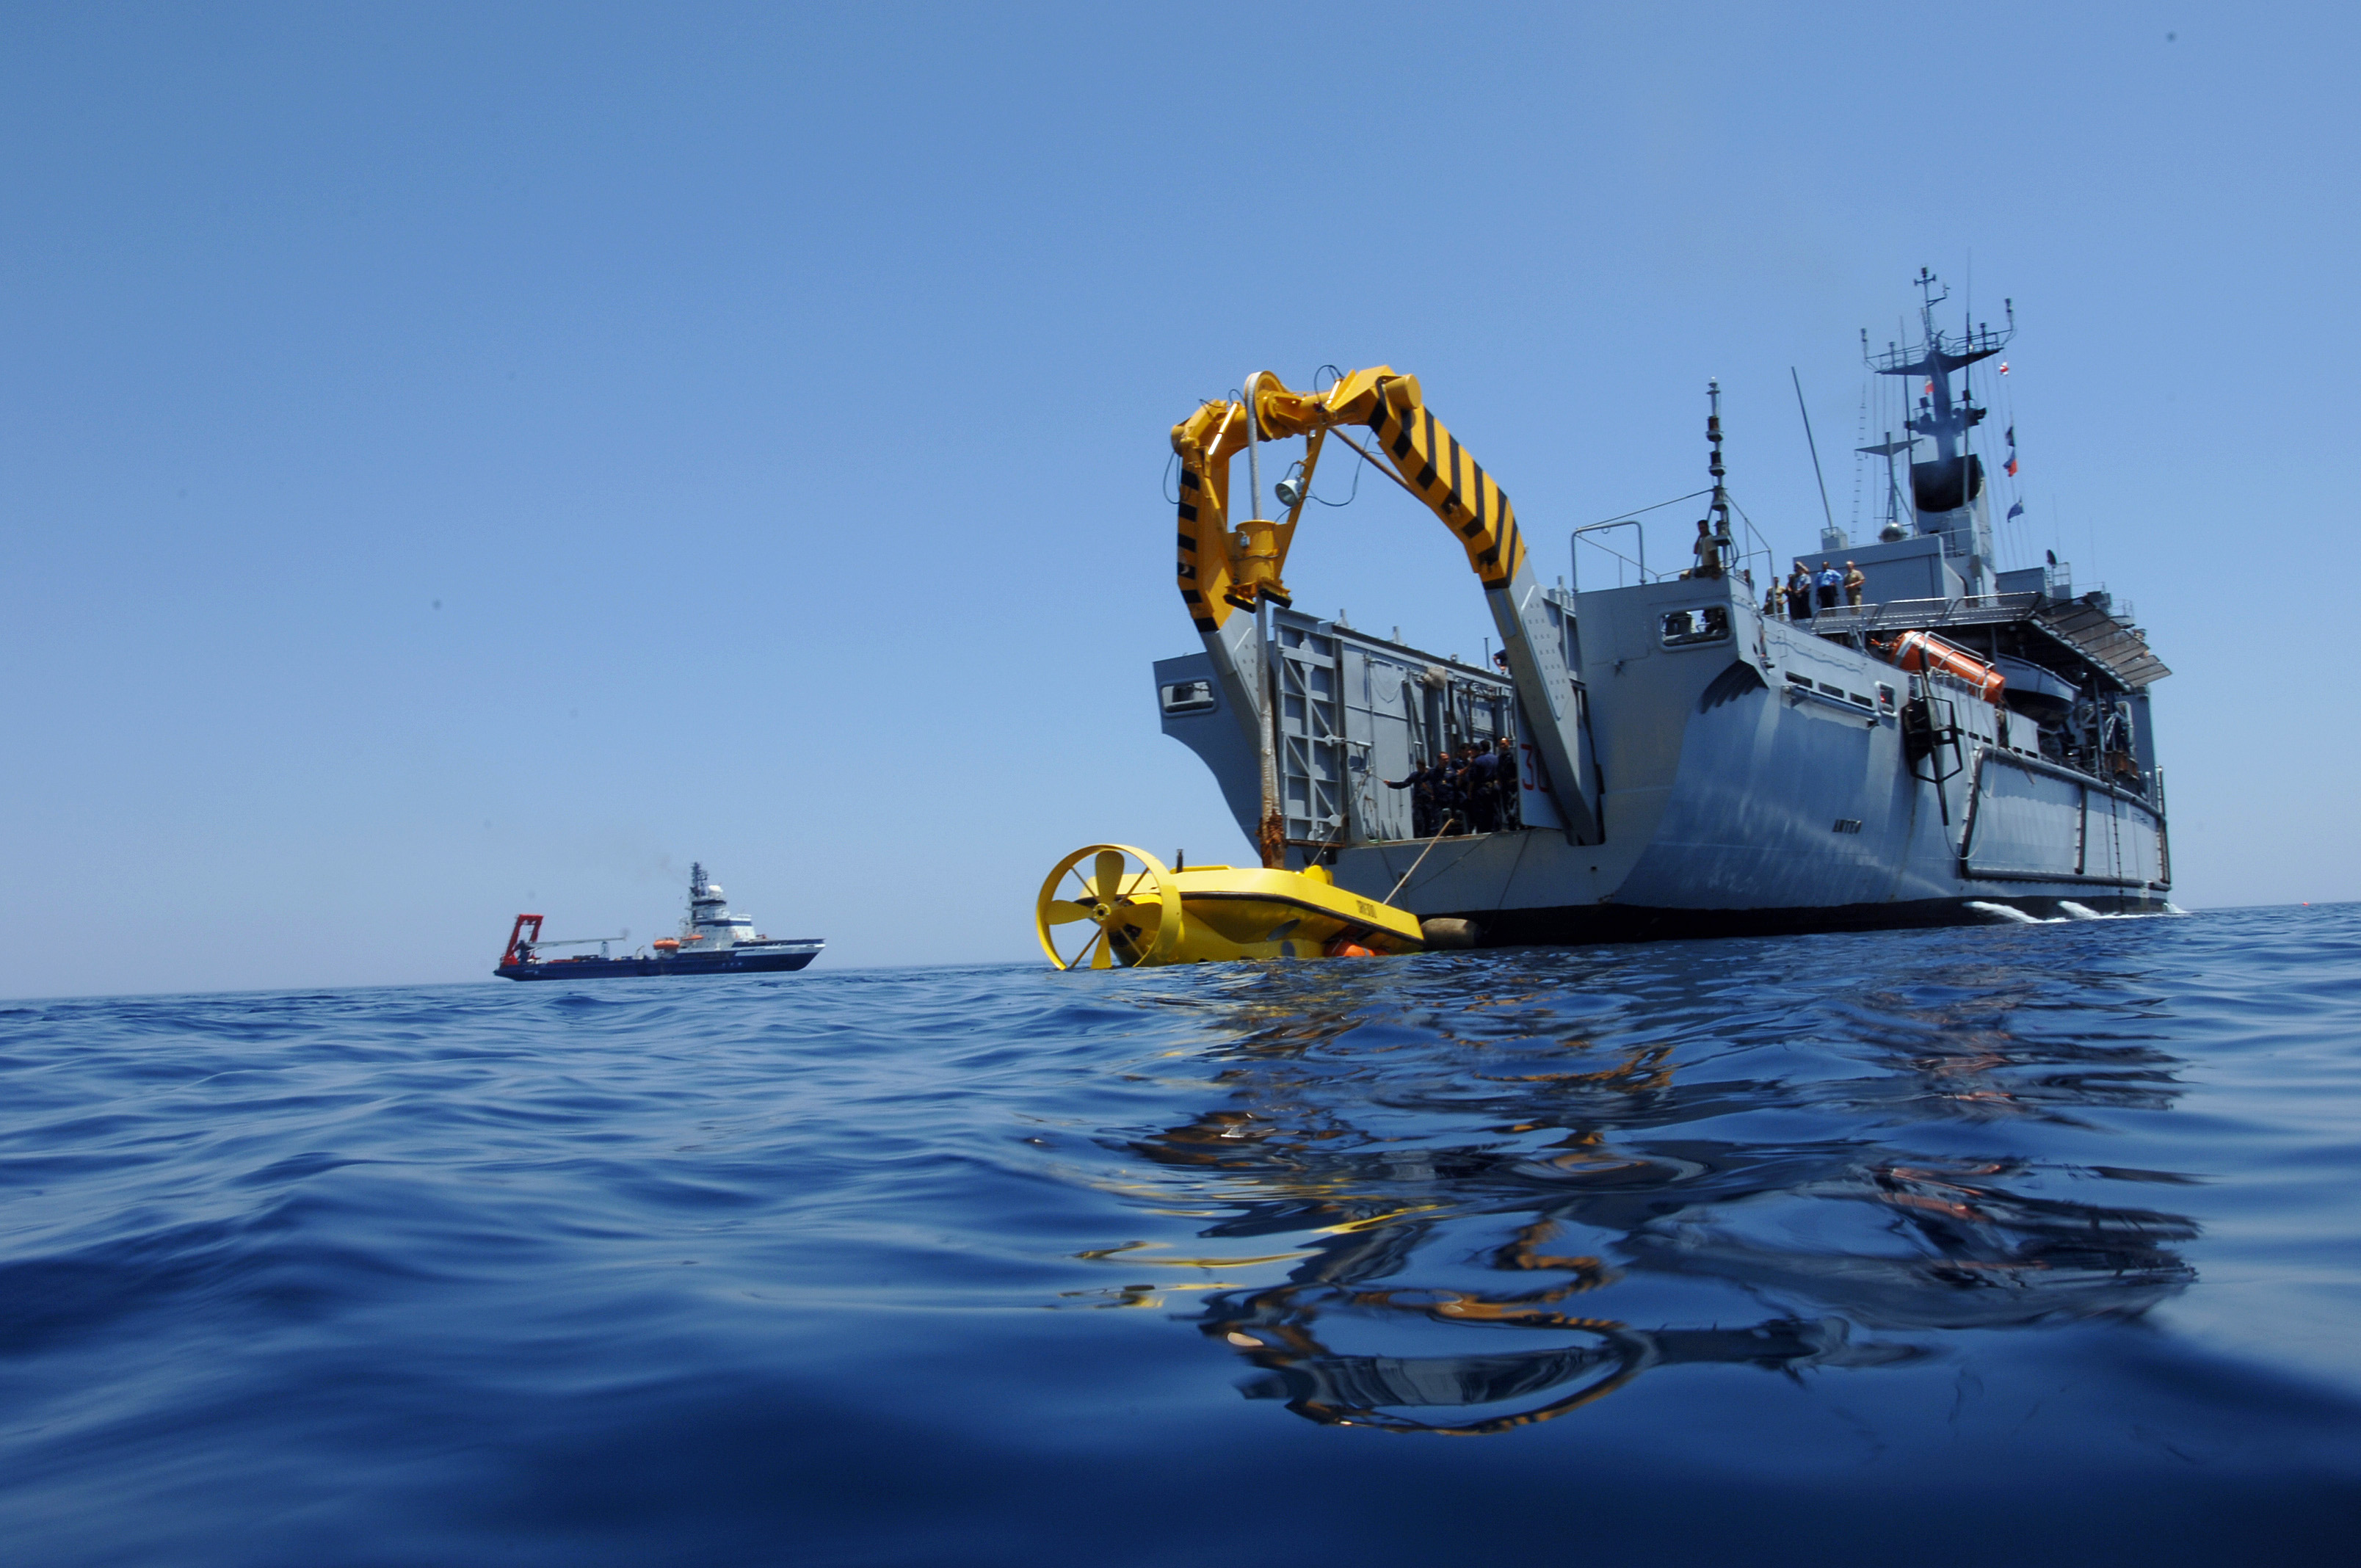 U.S. Navy to Help with South Korean Ferry Salvage |Navy Salvage Ships